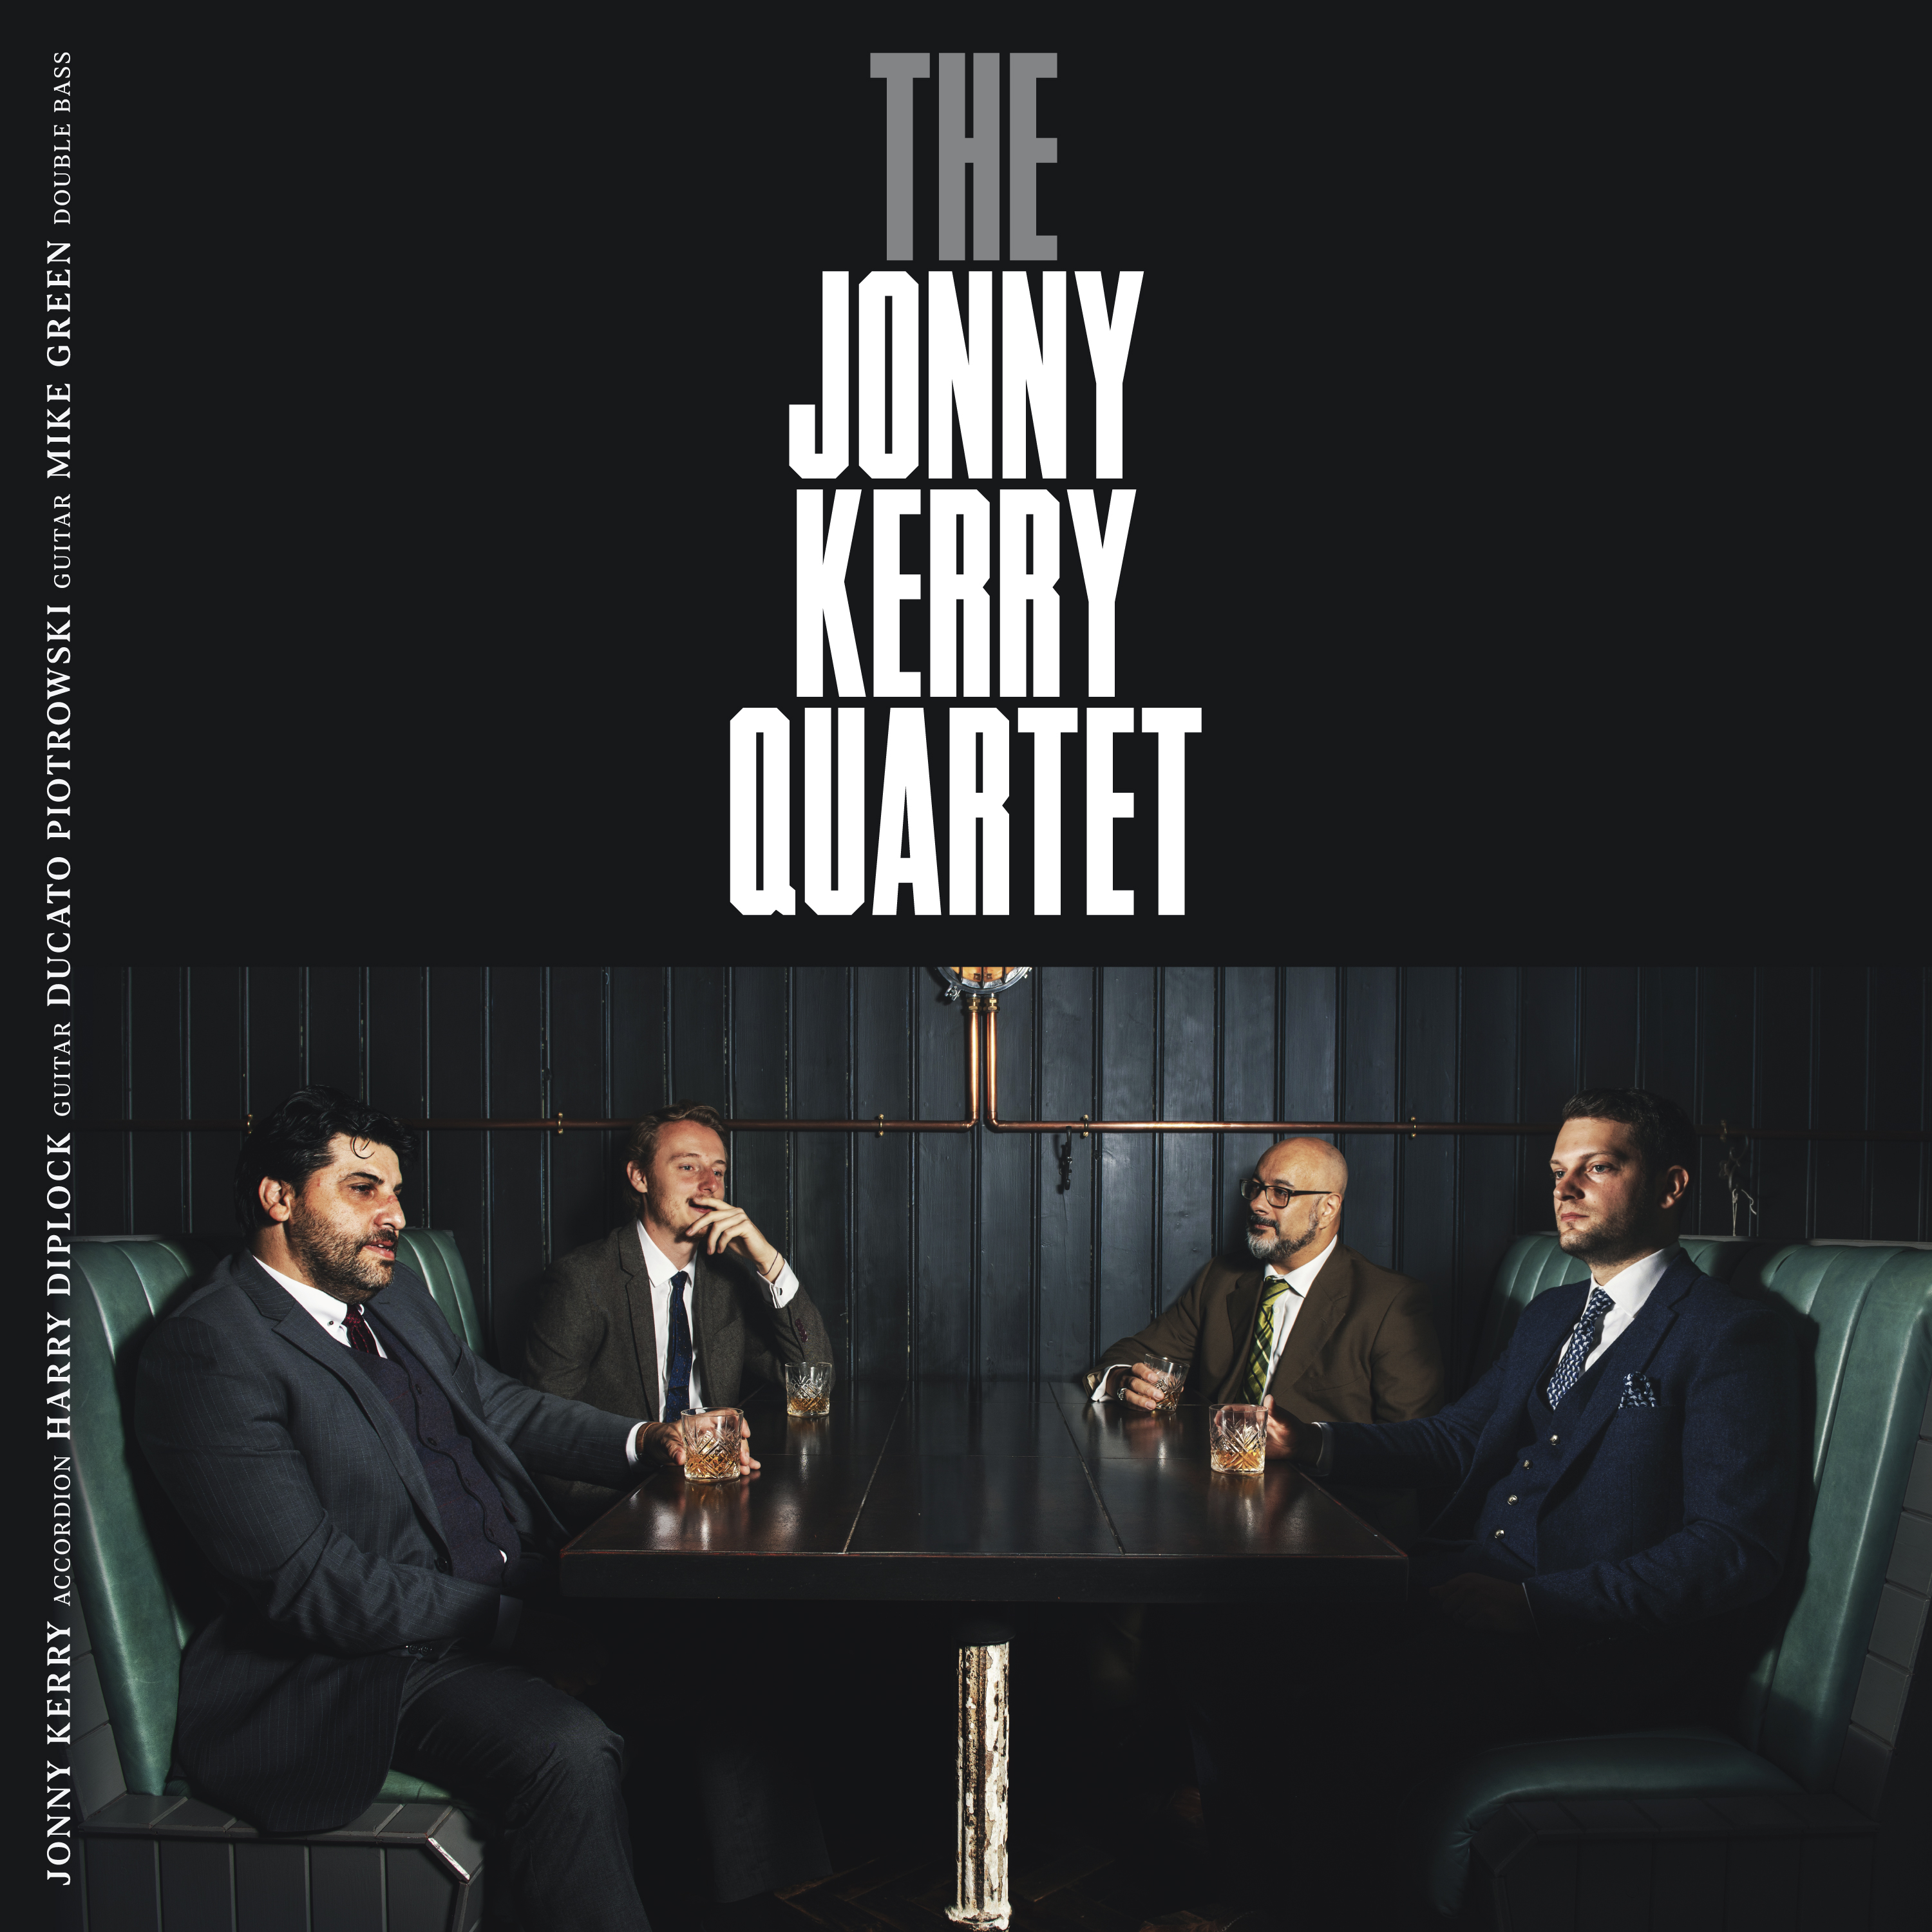 Cover art for The Jonny Kerry Quartet